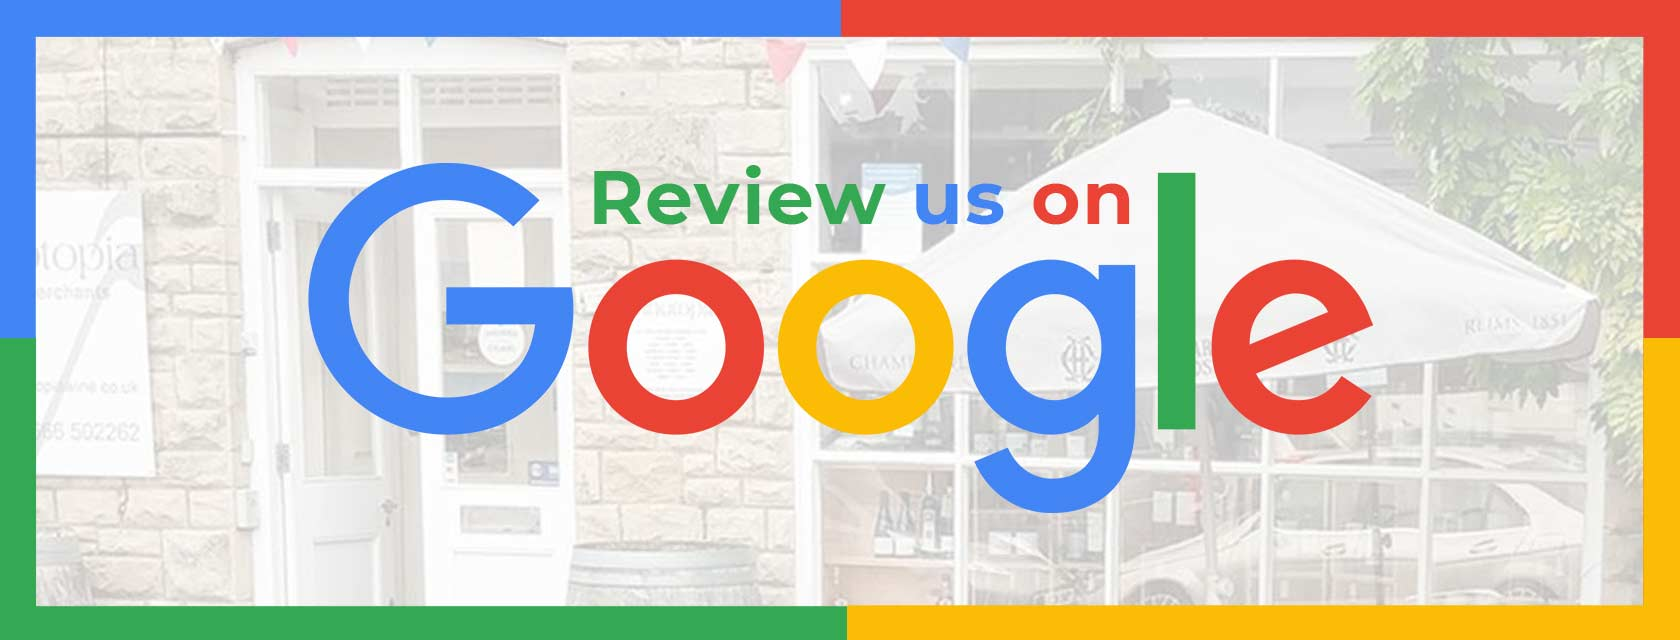 Google Review Banner Image